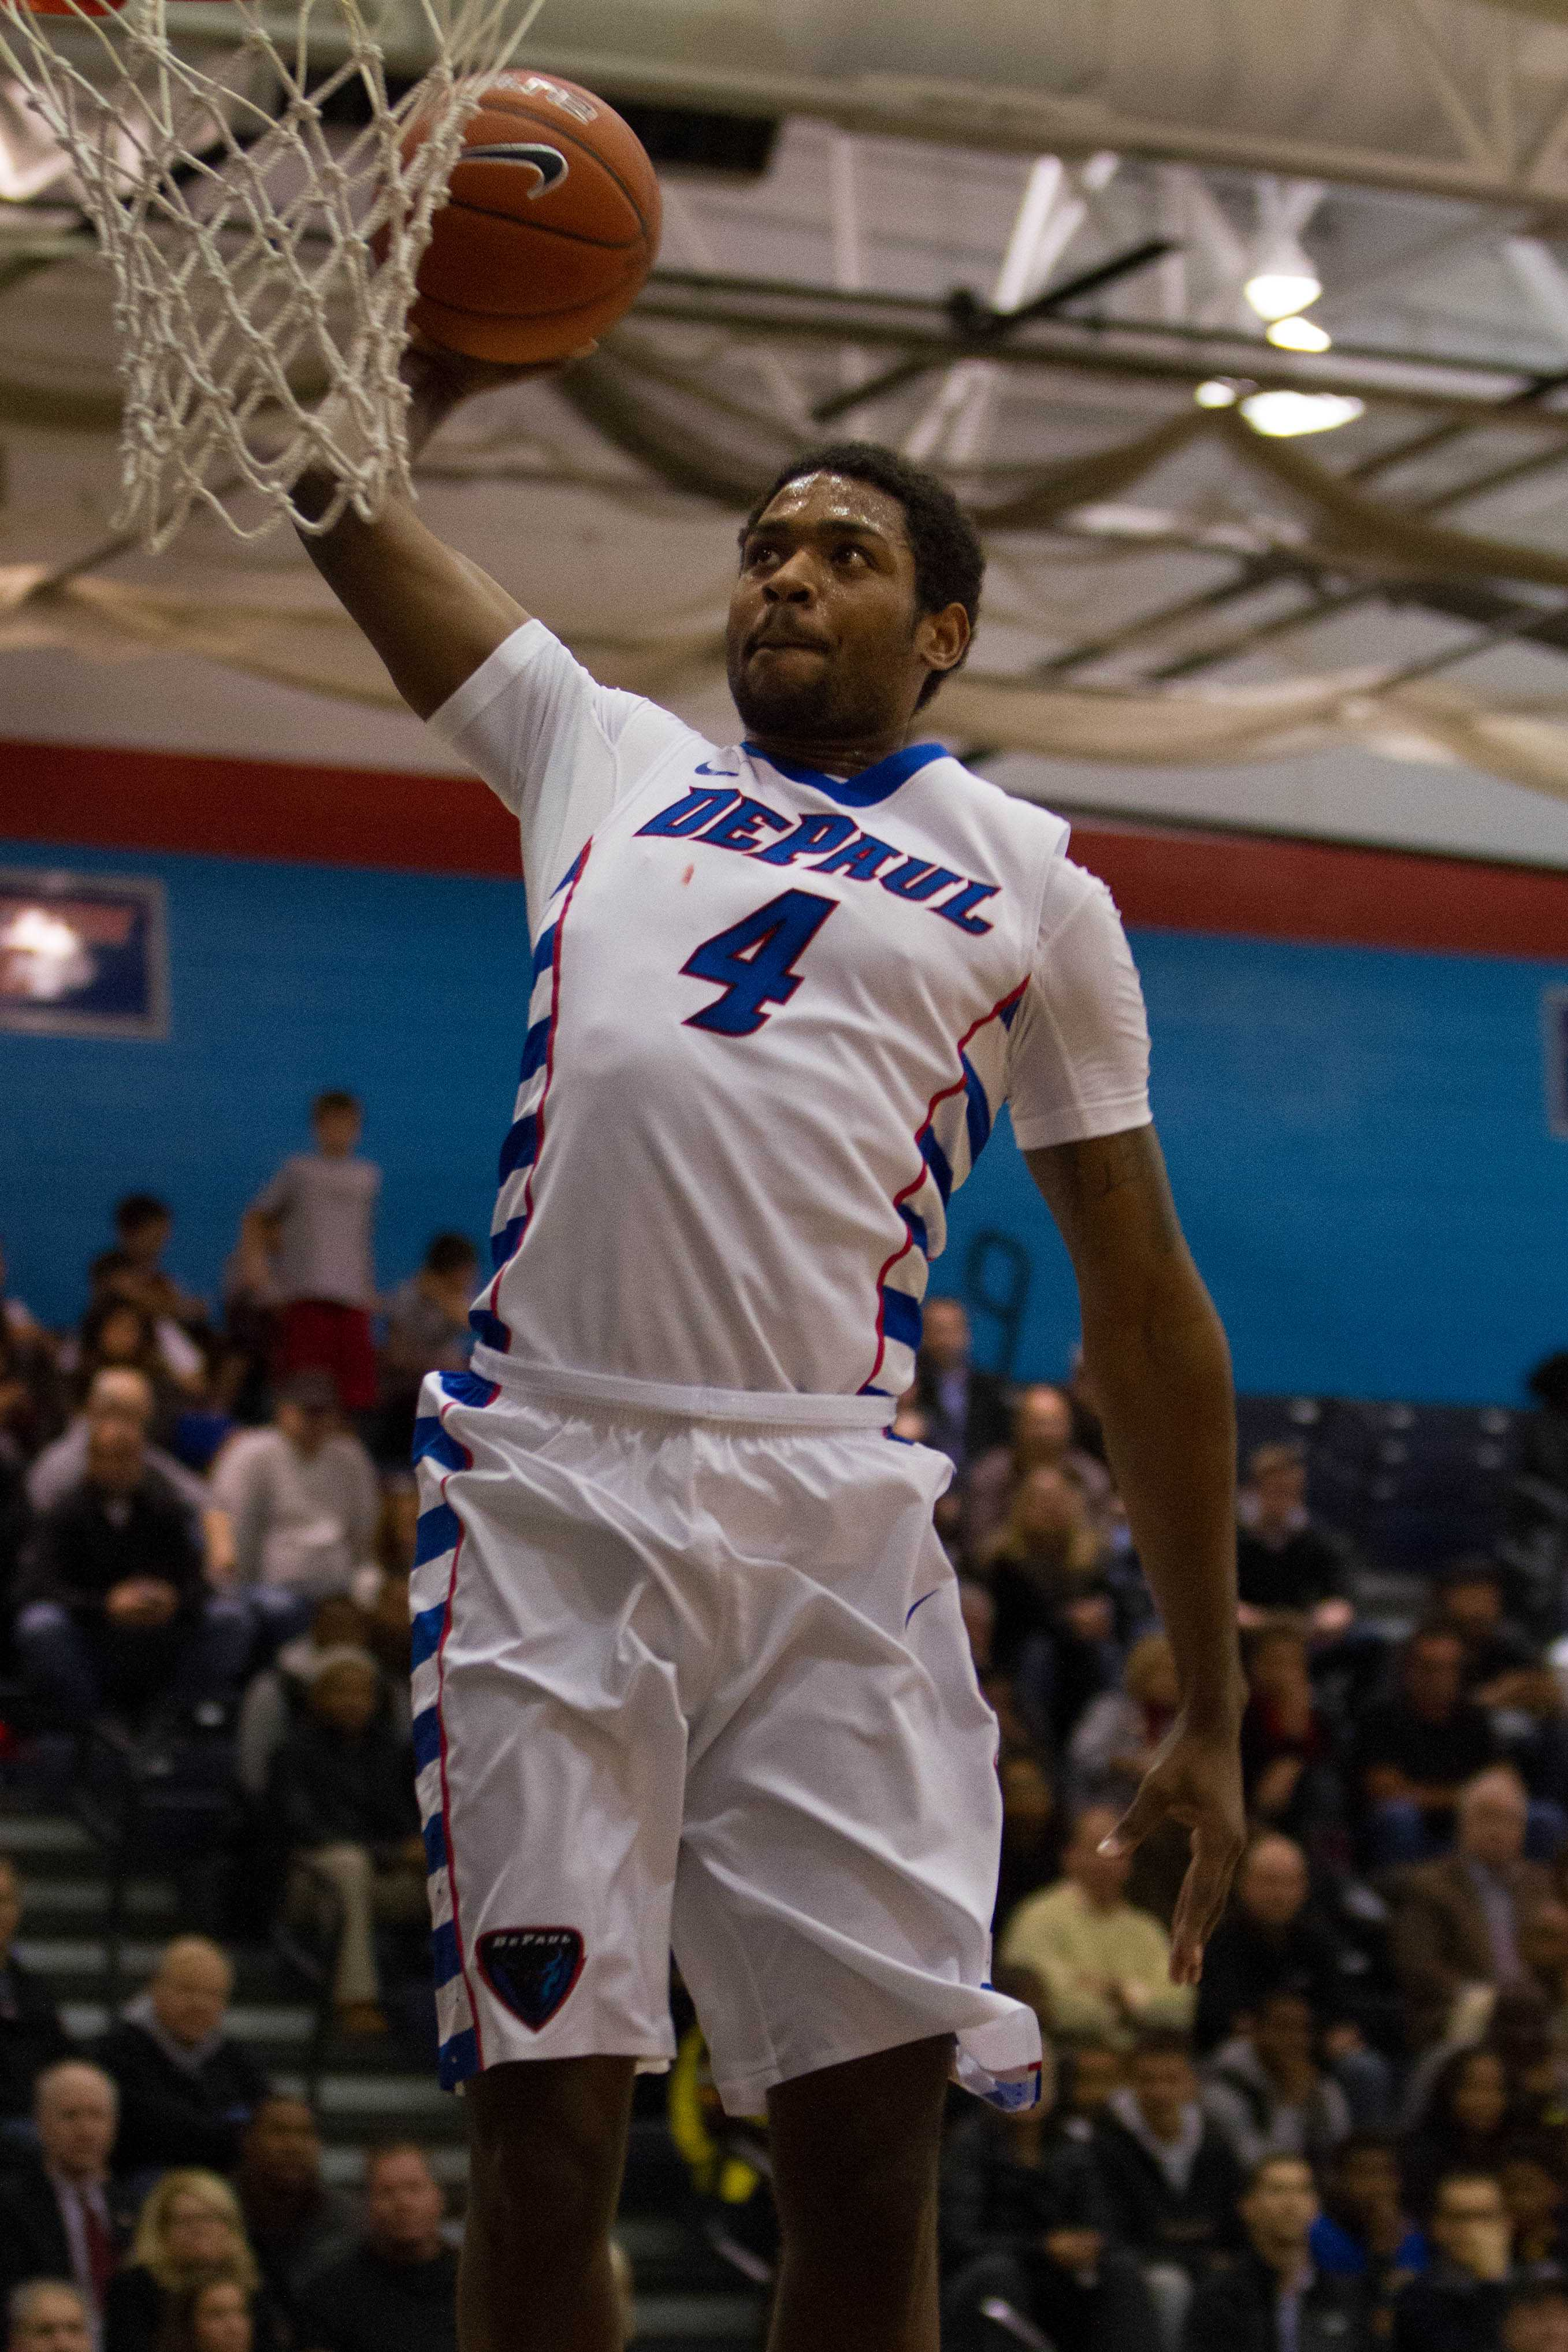 depaul basketball - photo #10